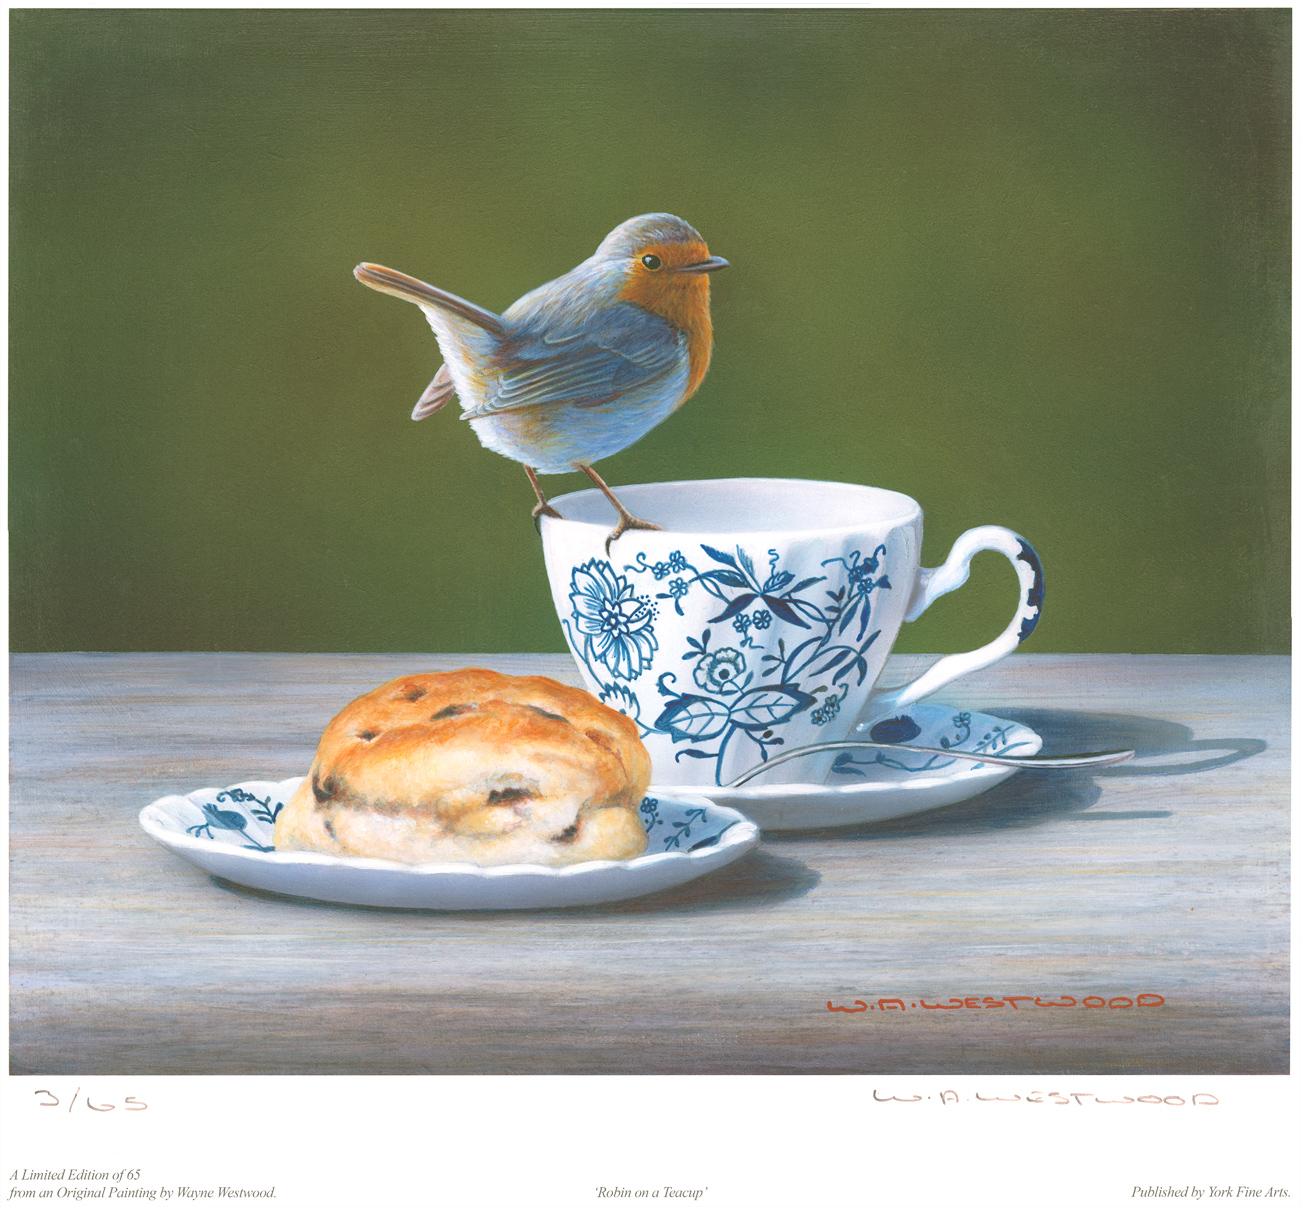 Wayne Westwood, Signed limited edition print, Robin on a Teacup. Click to enlarge